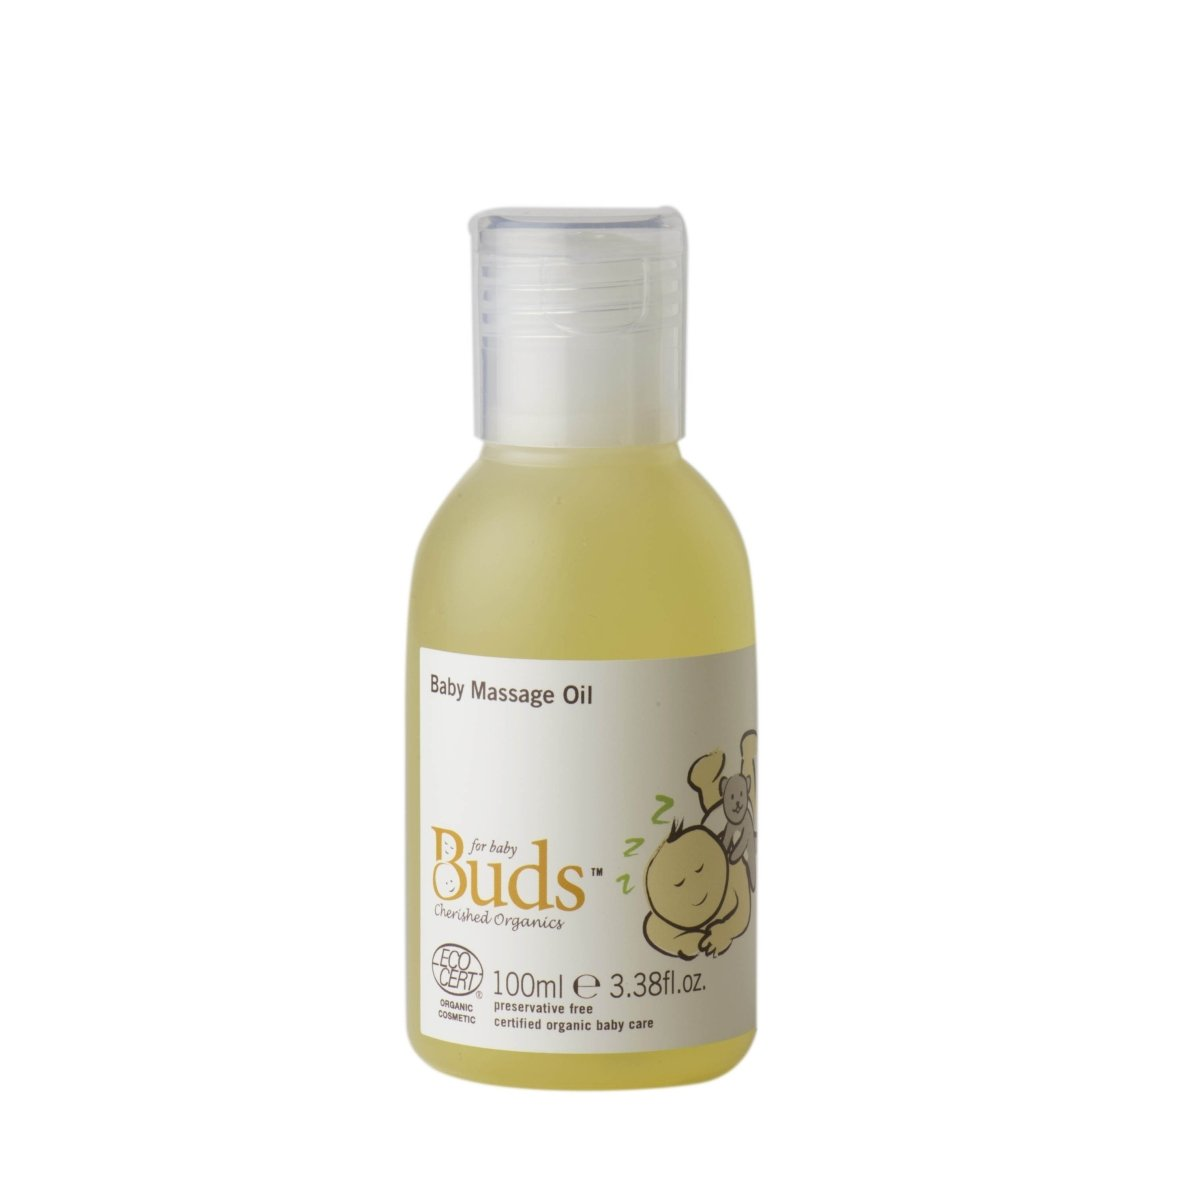 BUDS Baby Massage Oil 有機滋養植物按摩油 [100ml] - MINT Organics